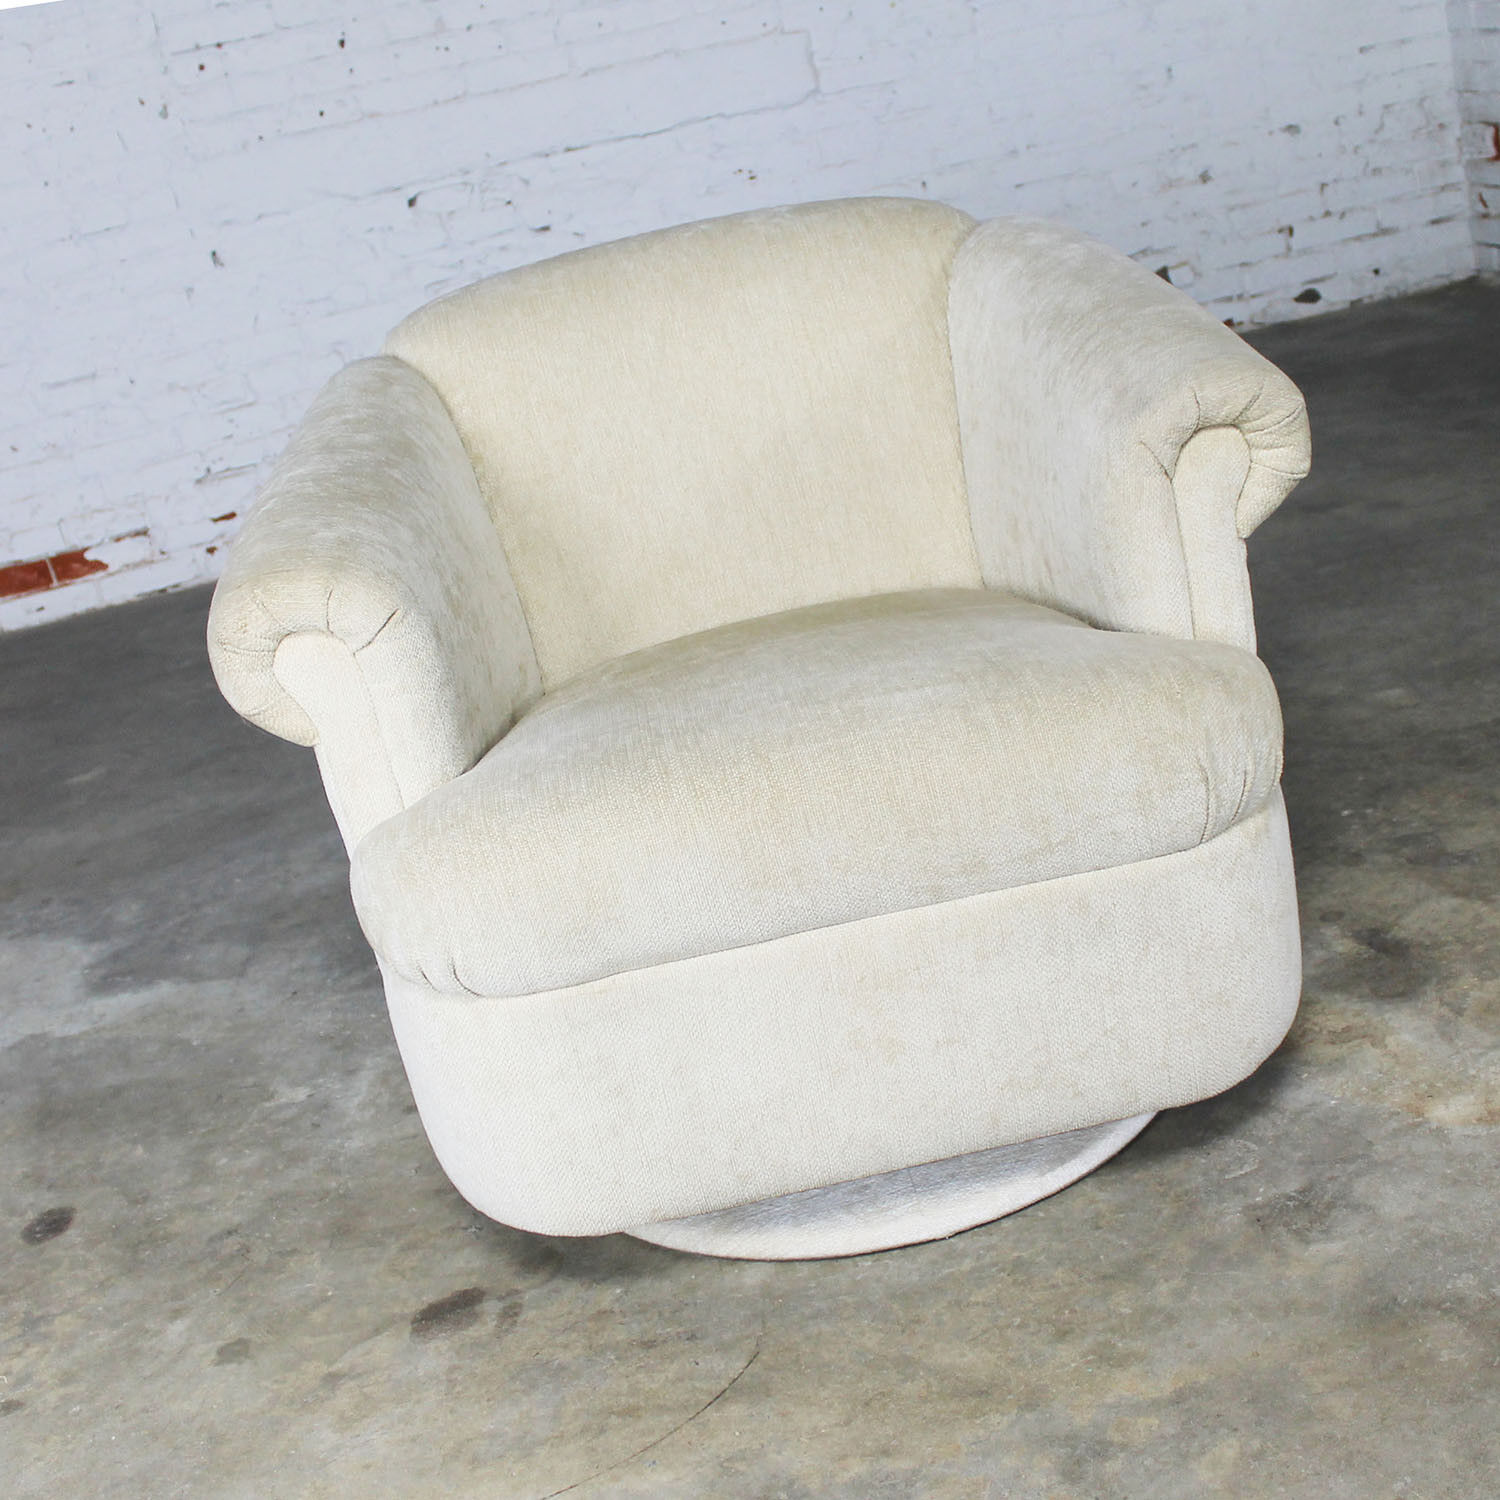 Super Details About Barrel Shaped Off White Vintage Swivel Club Chair With Rolled Arms Squirreltailoven Fun Painted Chair Ideas Images Squirreltailovenorg